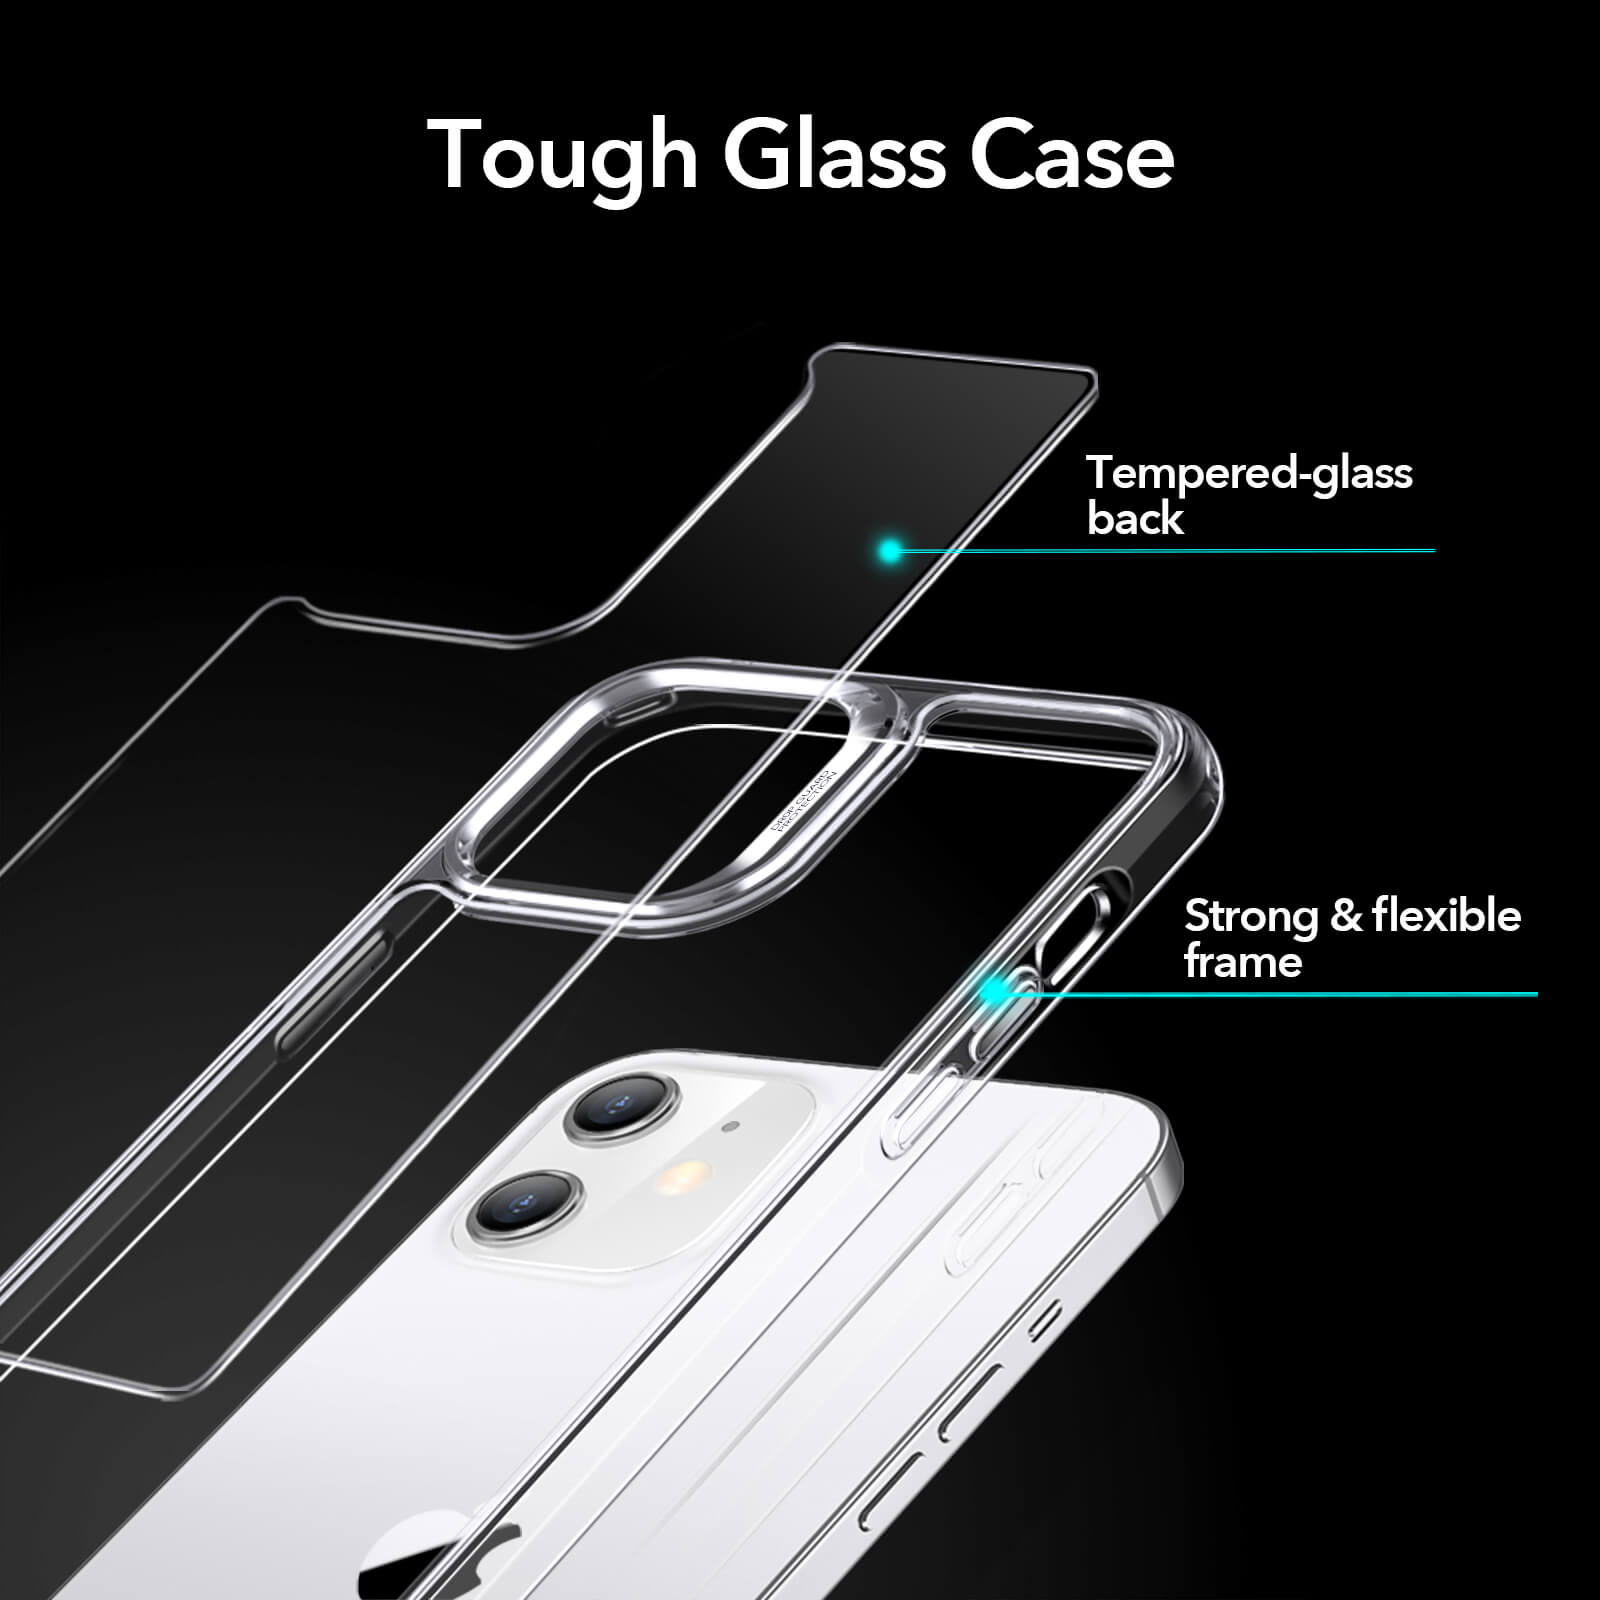 Strong and flexible frame with tough glass